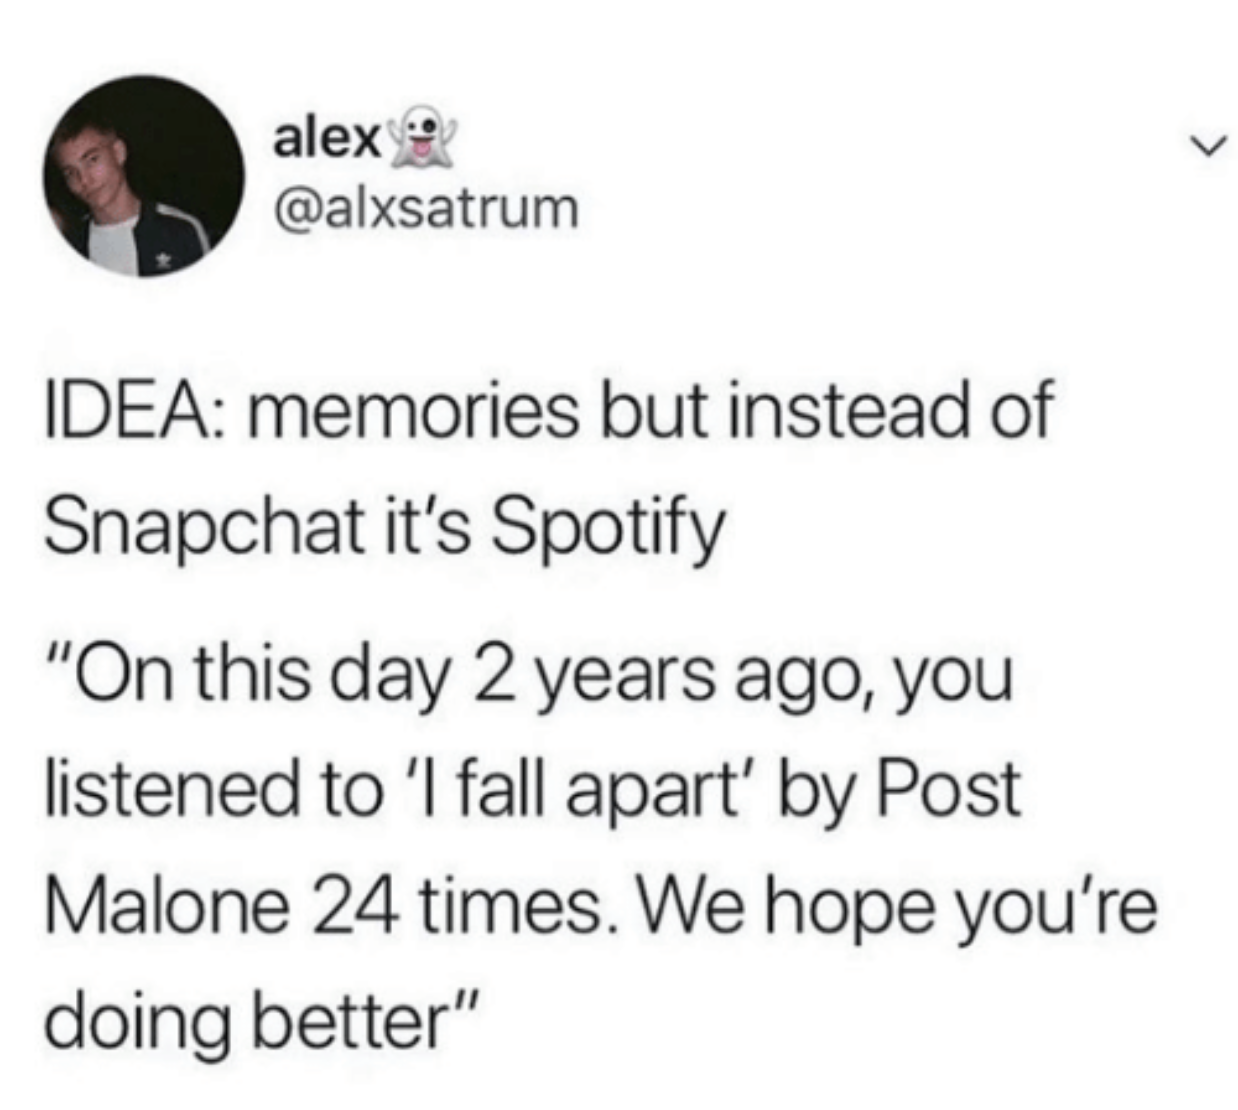 someone who says spotify should have an on this day feature